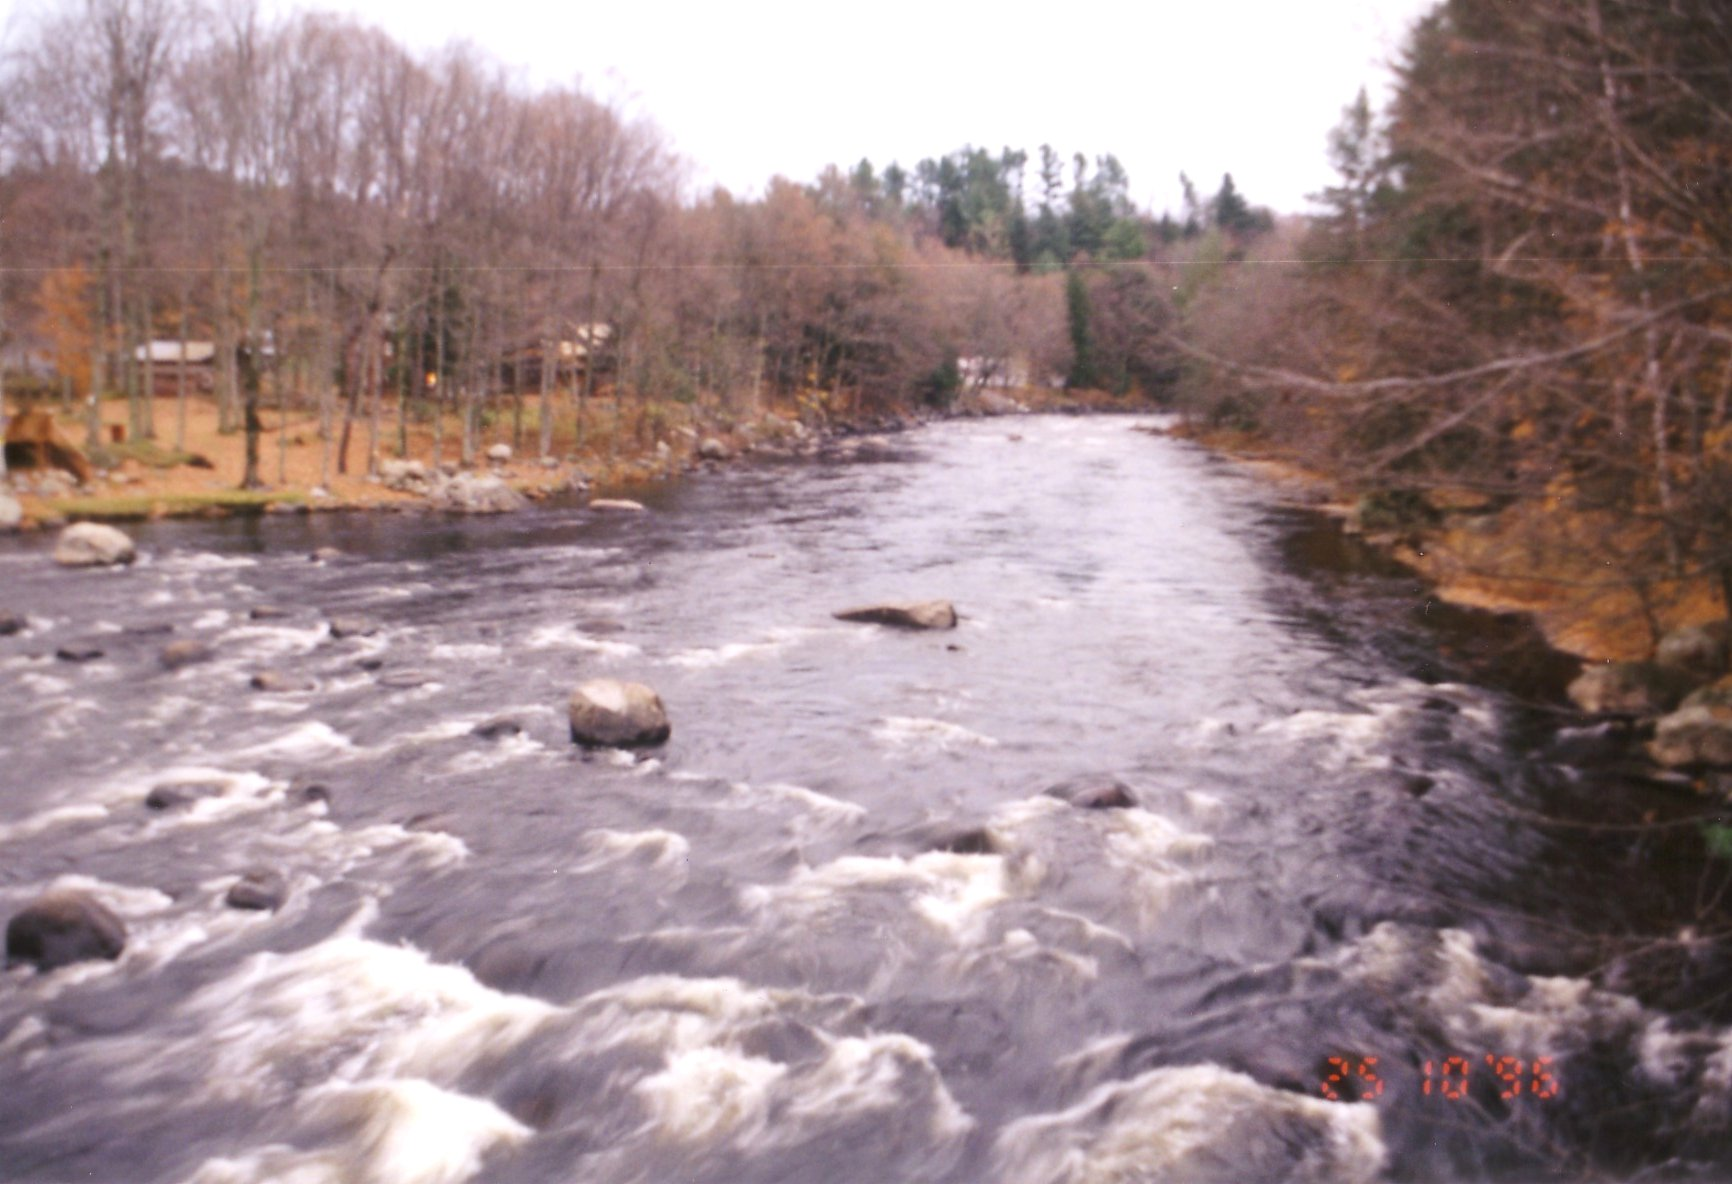 Photograph of the Black River Near Boonville, NY (BOON6)